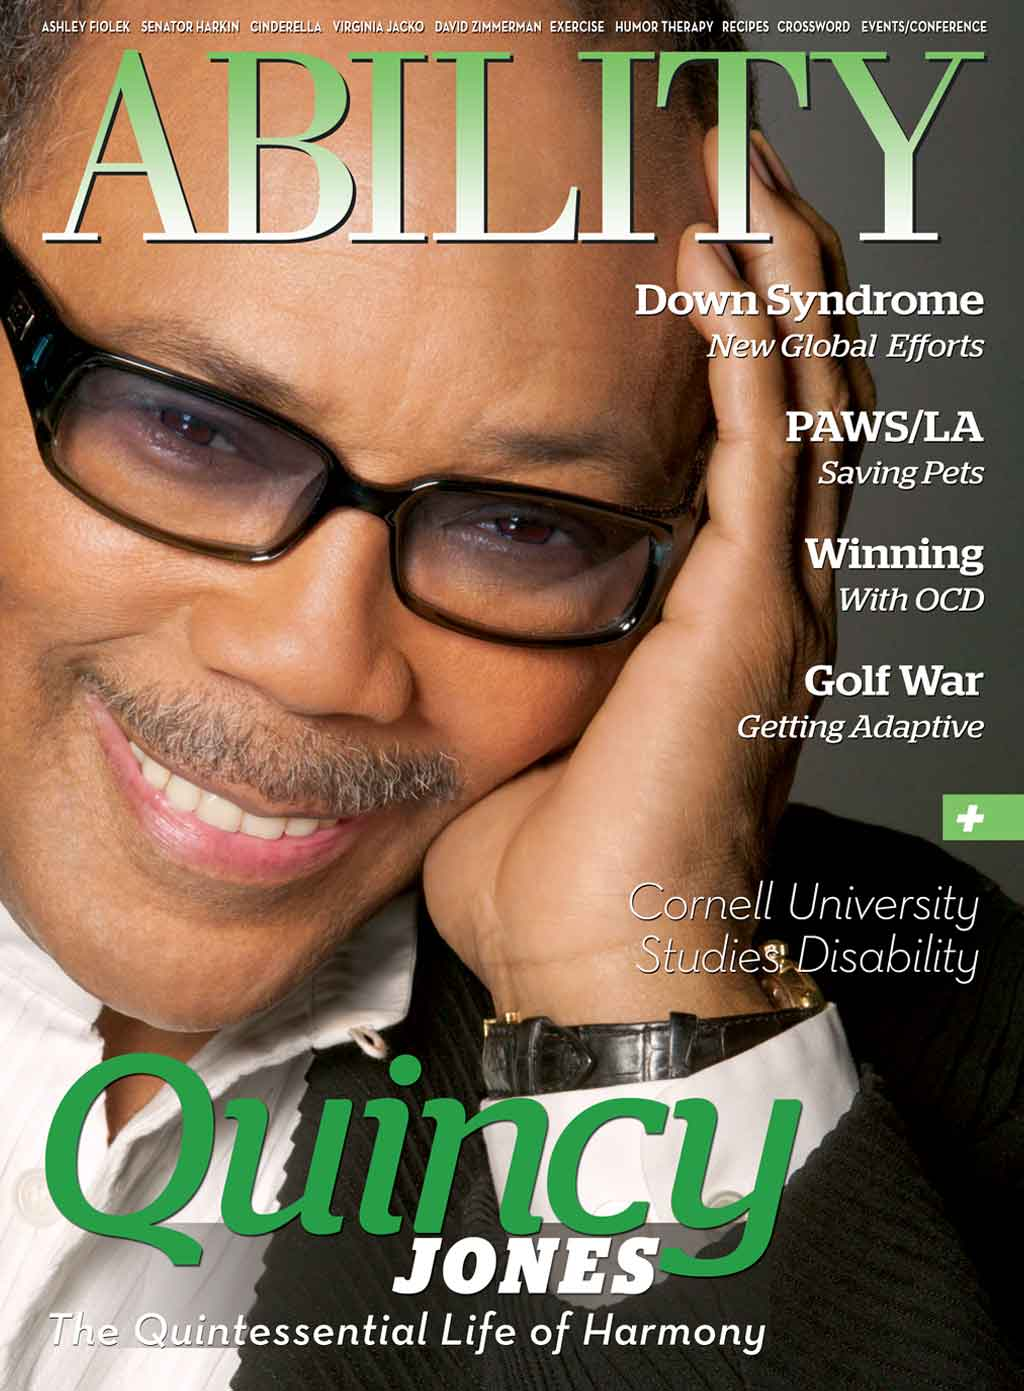 Quincy Jones Issue